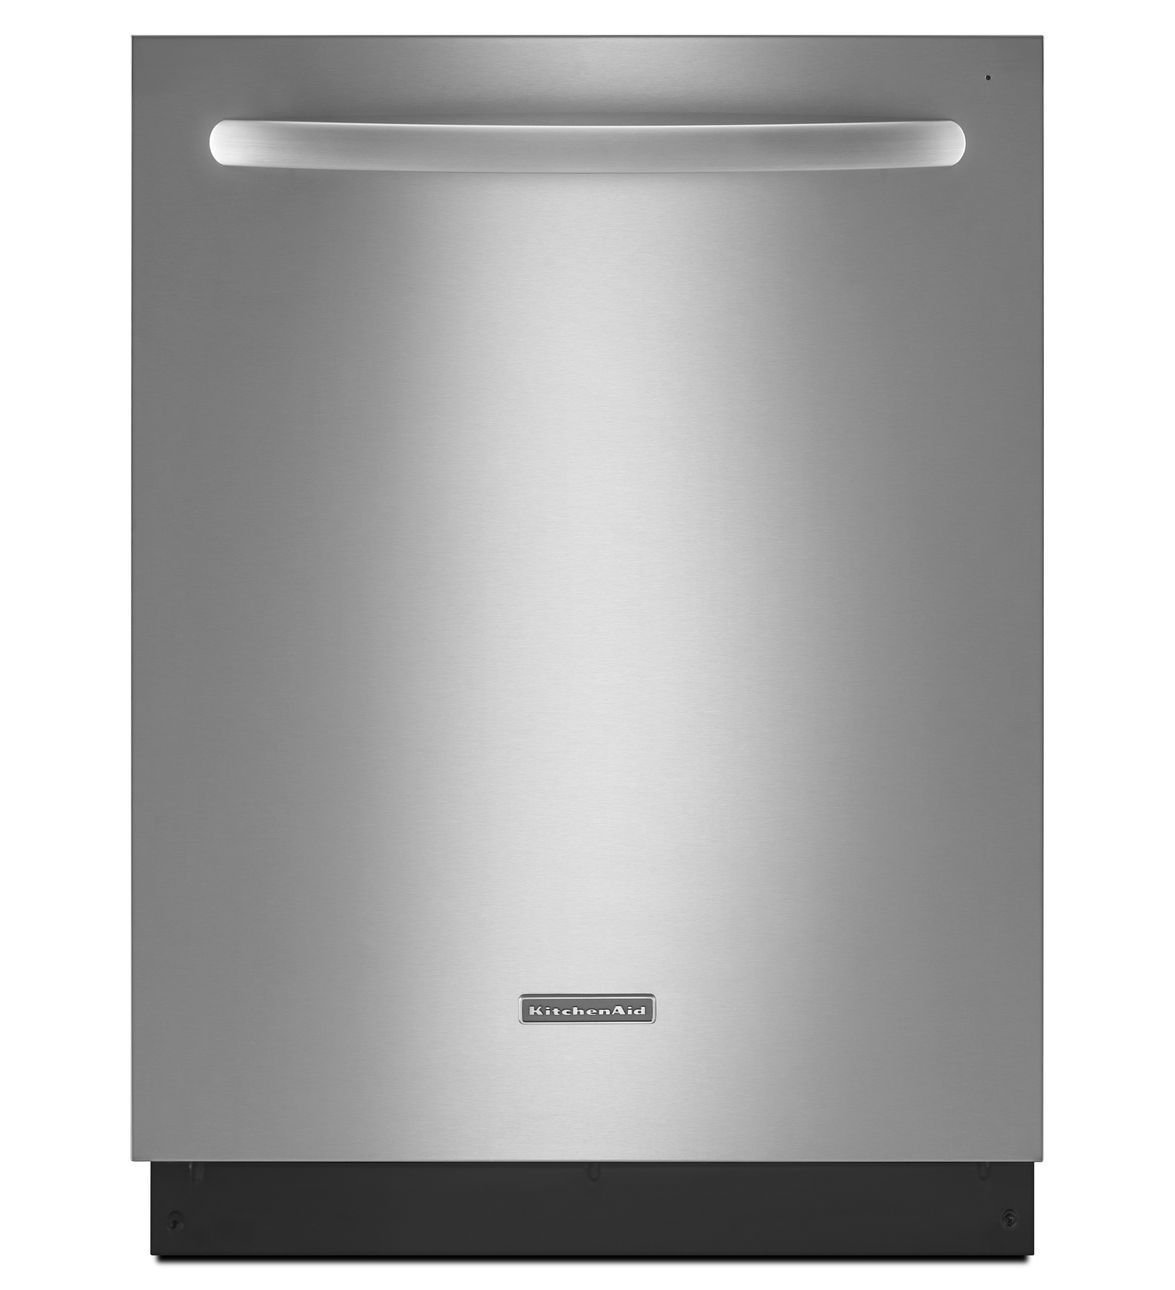 KITCHENAID KDTE204DSS Dishwasher review